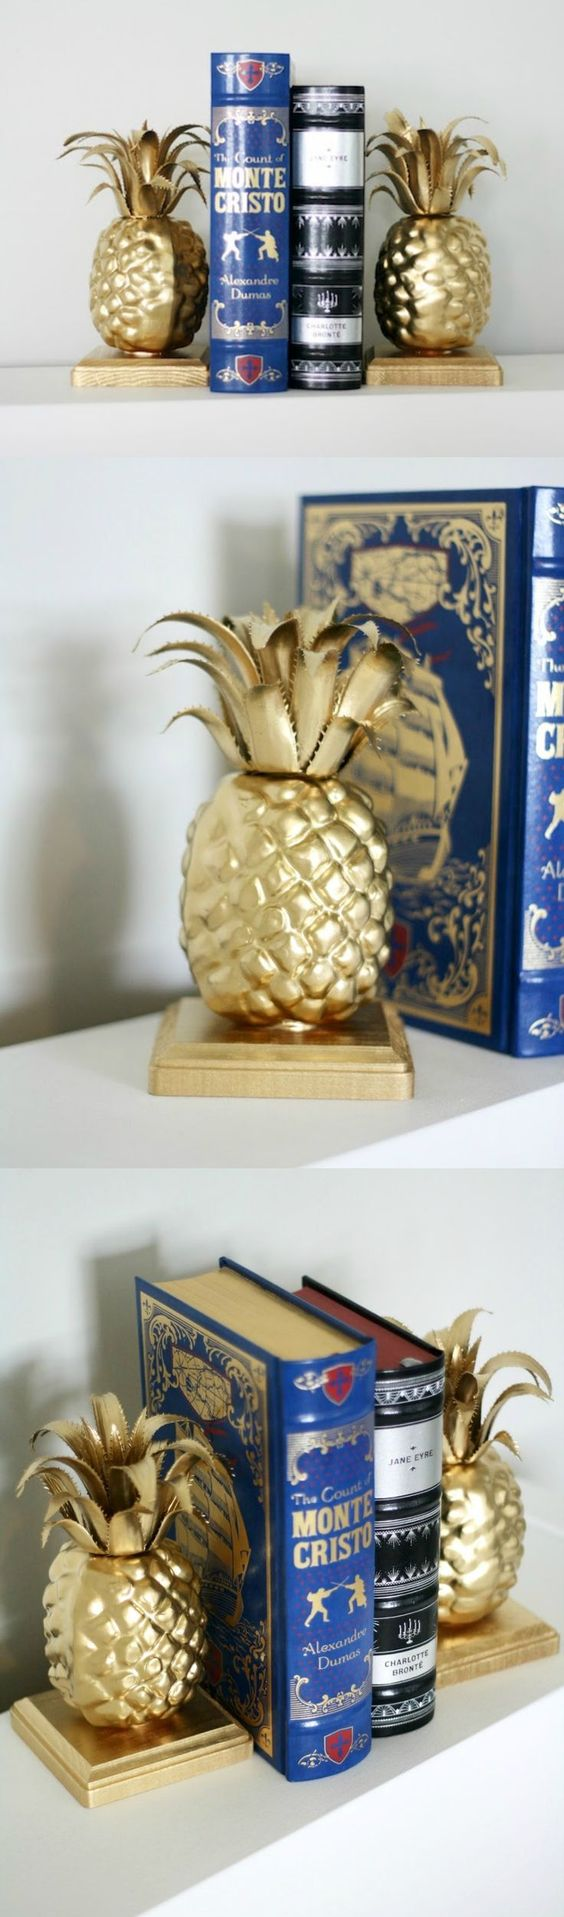 Learn how to make these simple, custom pineapple DIY bookends in just a few steps! The supplies are also very budget friendly.: